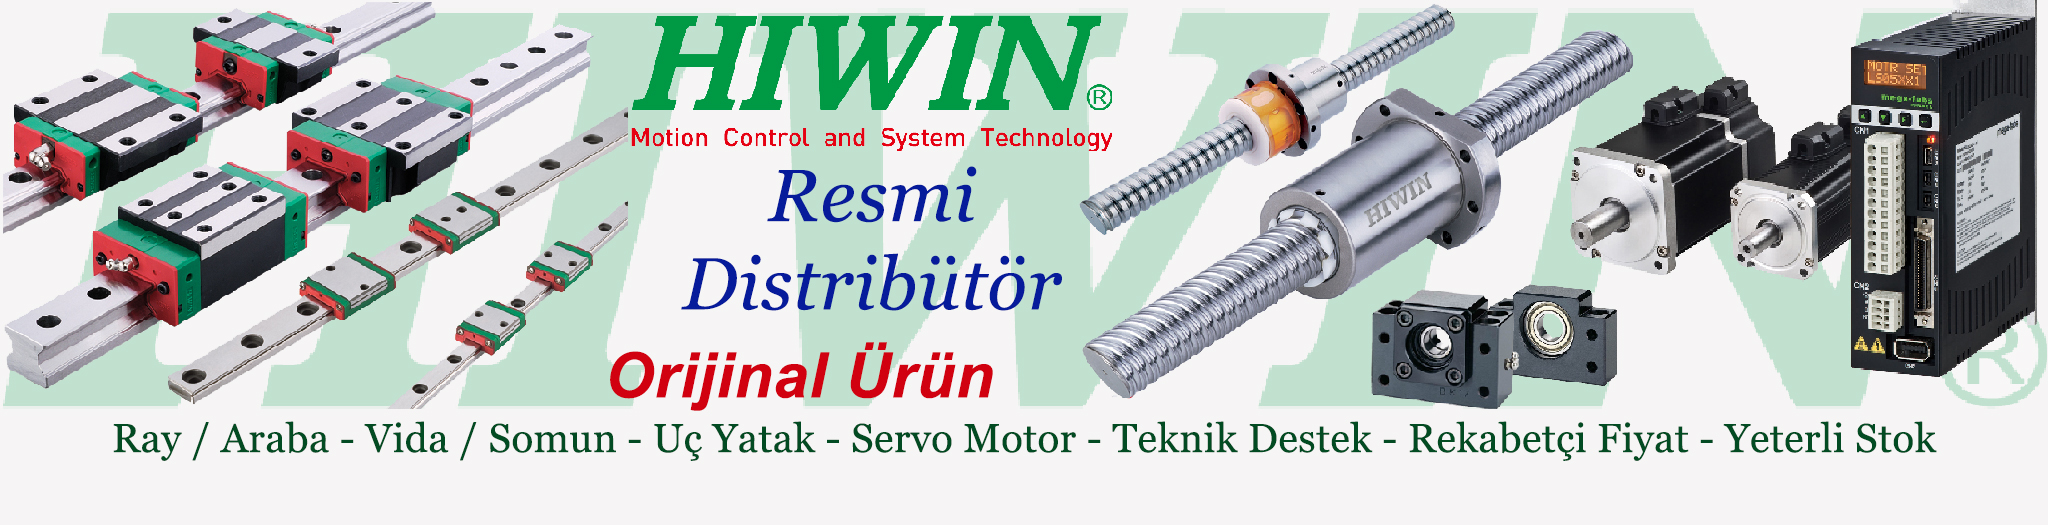 Hiwin Linear and Hiwin Mikrosystem Resmi Distrib�t�r�